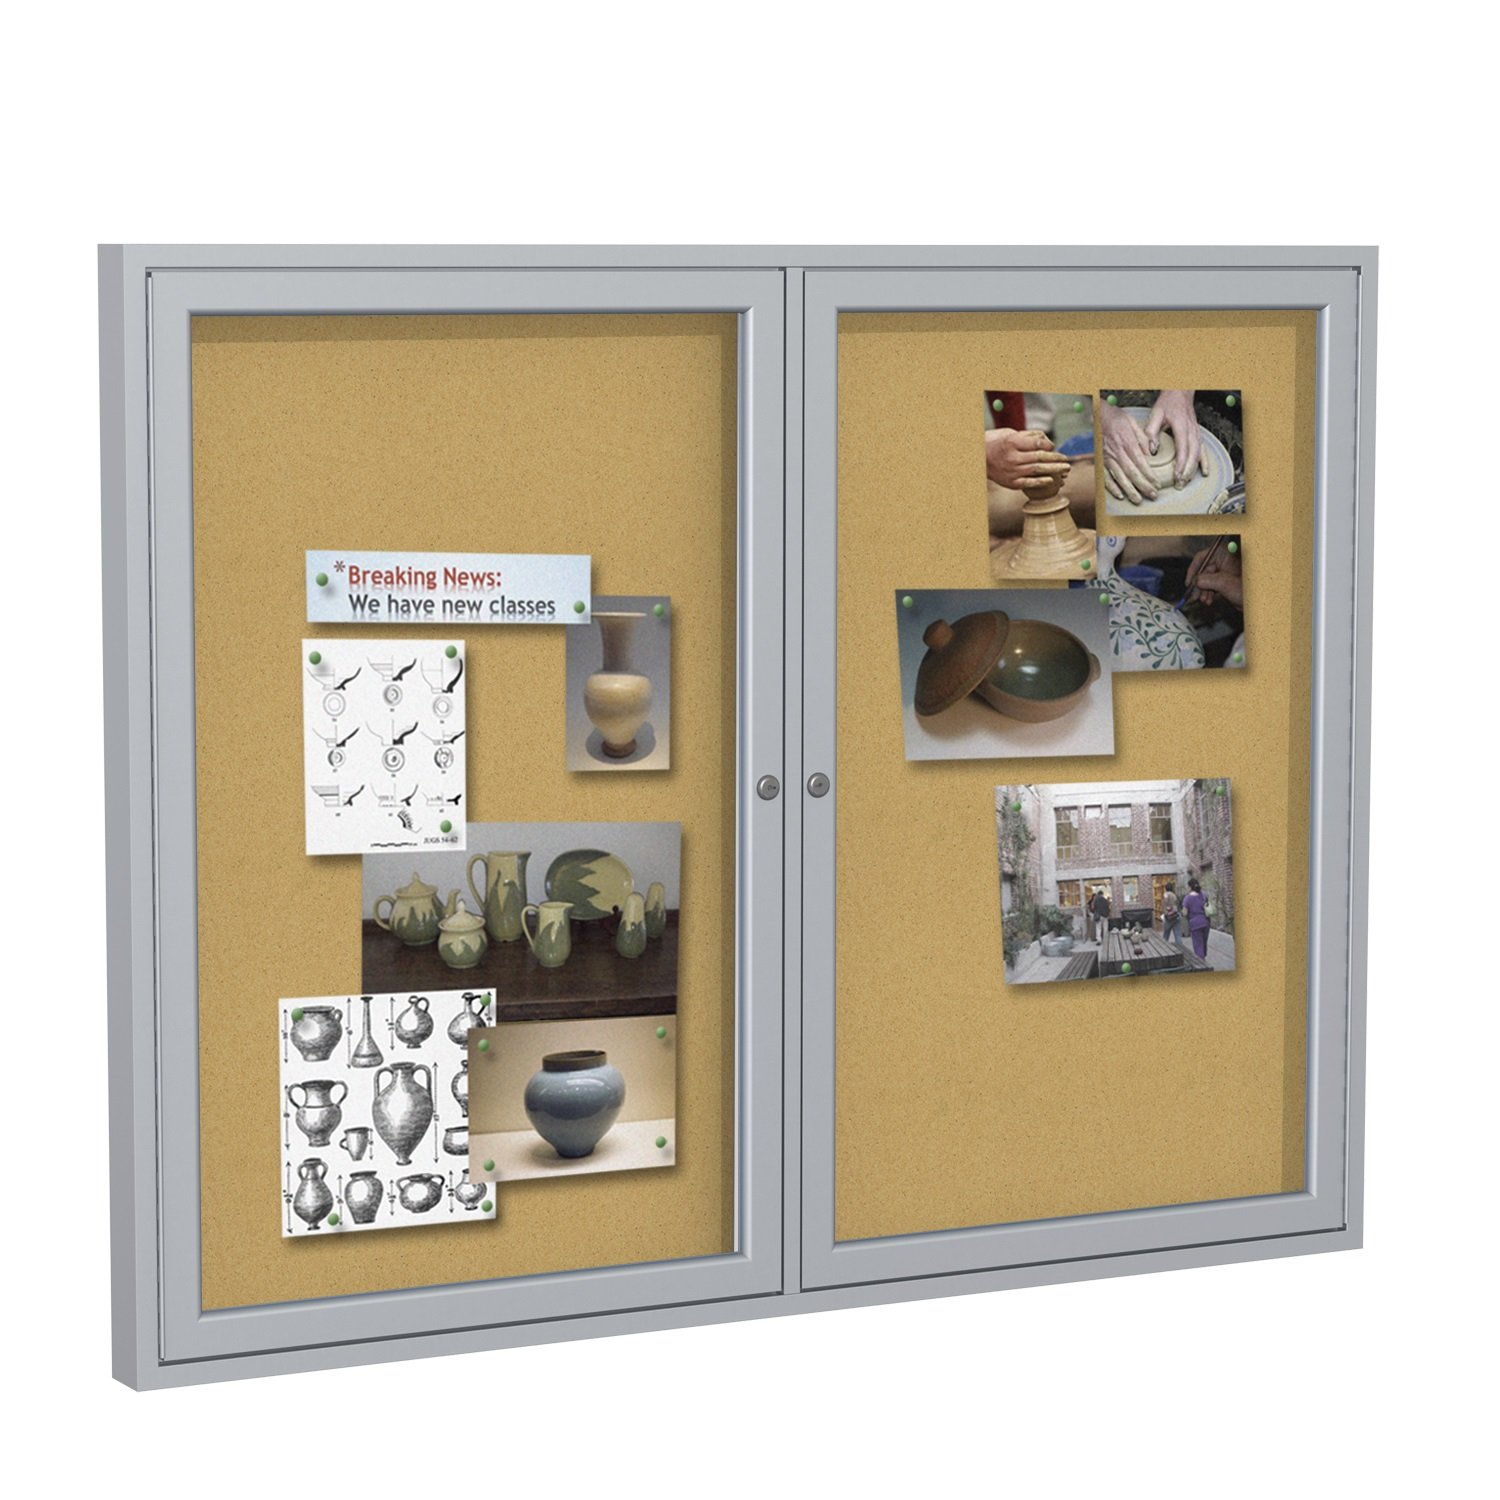 Ghent 36''x60''   2-Door indoor Enclosed Bulletin Board , Shatter Resistant, with Lock, Satin Aluminum Frame  - Natural Cork (PA23660K)  Made in the USA